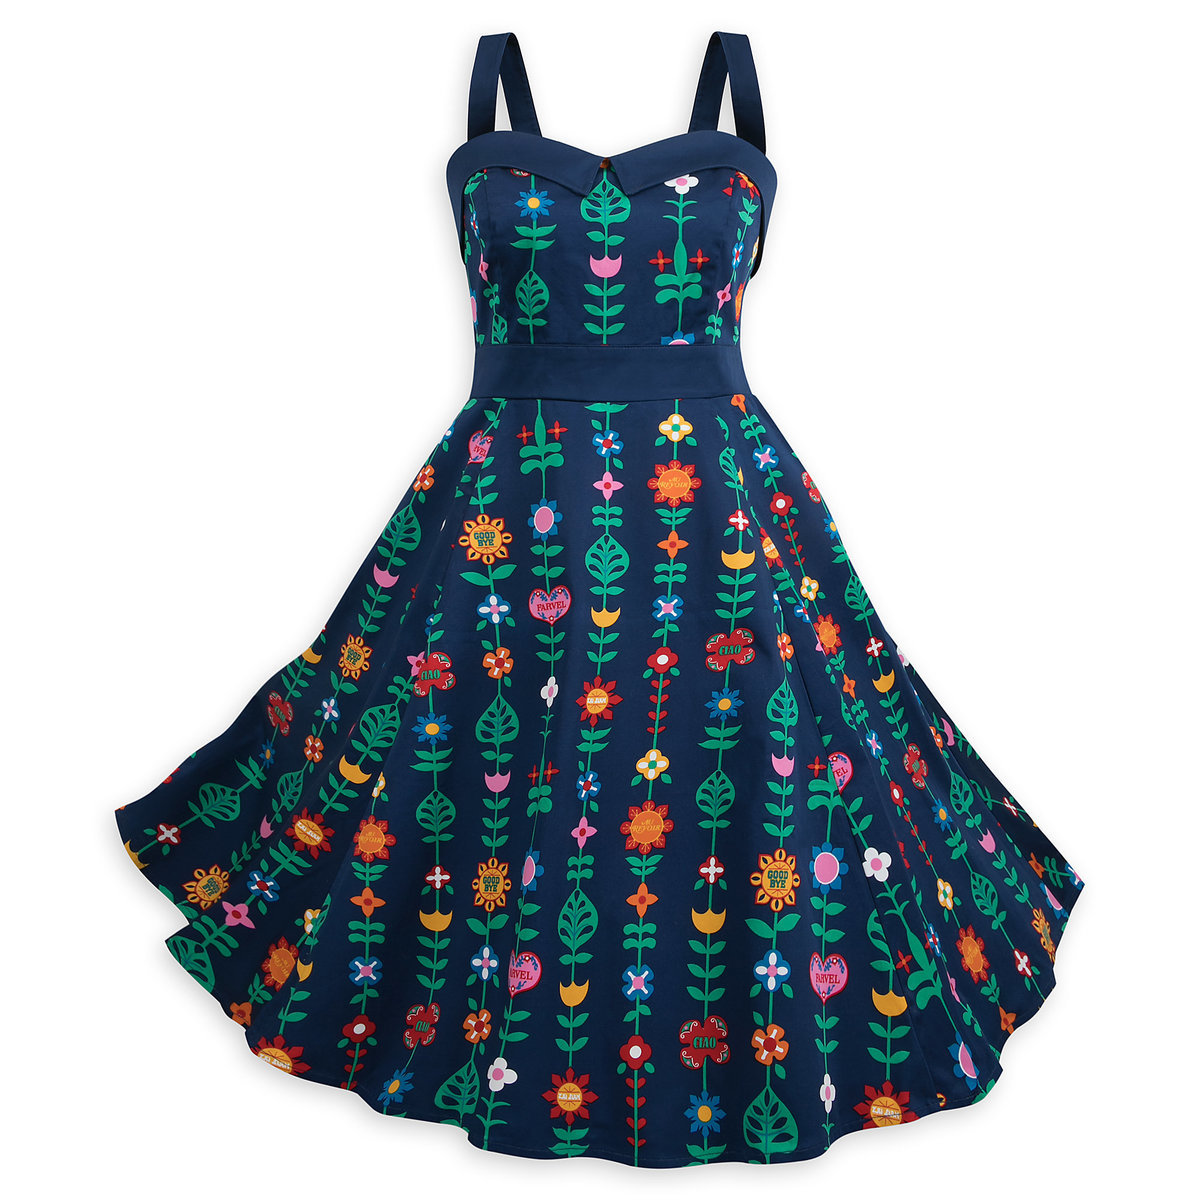 top picks #55 - small world dress